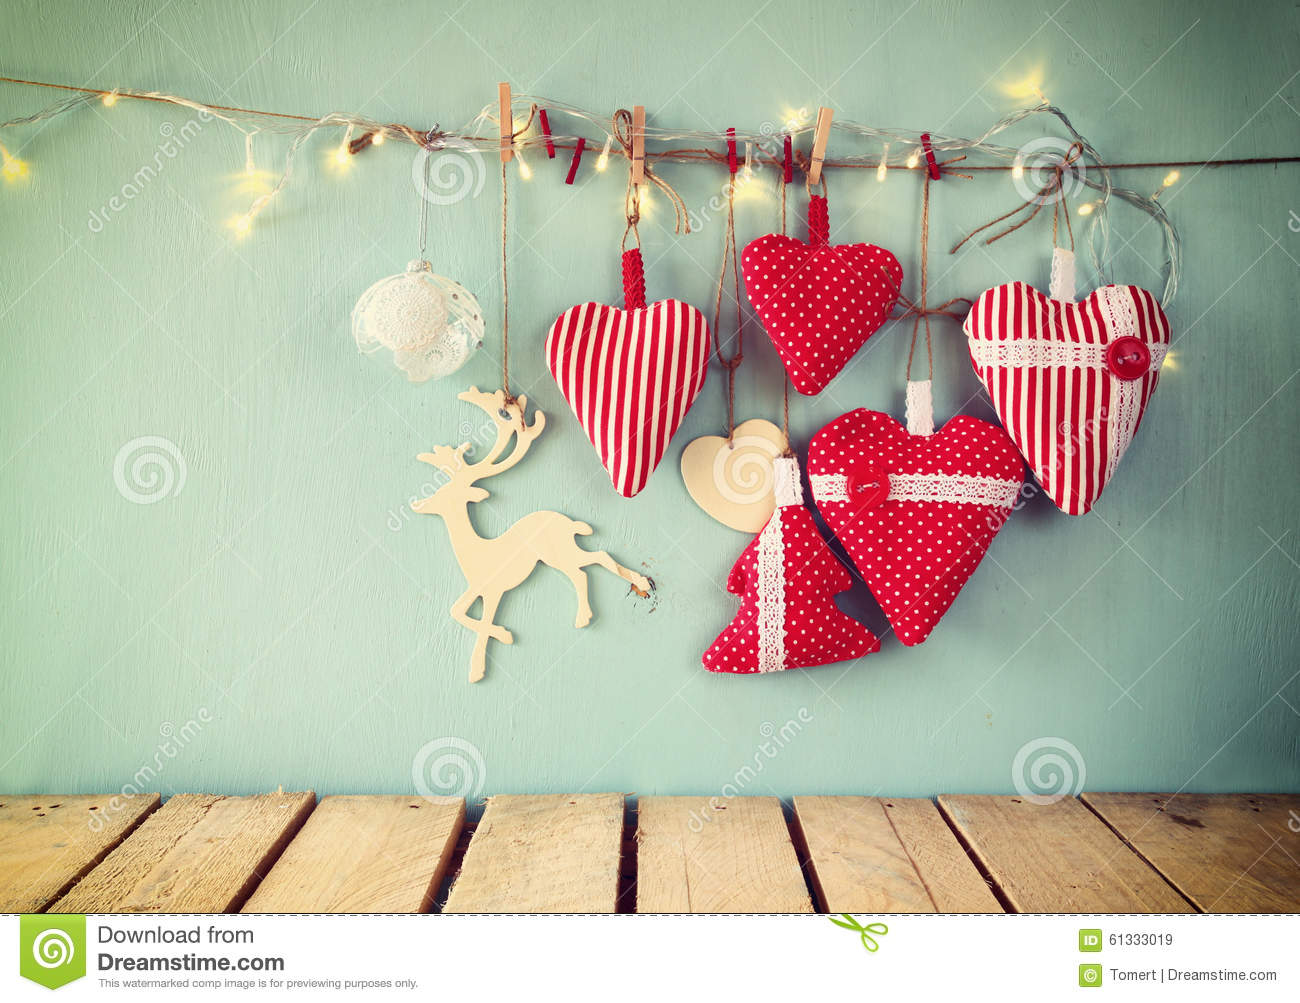 Retro Weihnachtsbilder.Christmas Image Of Fabric Red Hearts And Garland Lights Hanging On